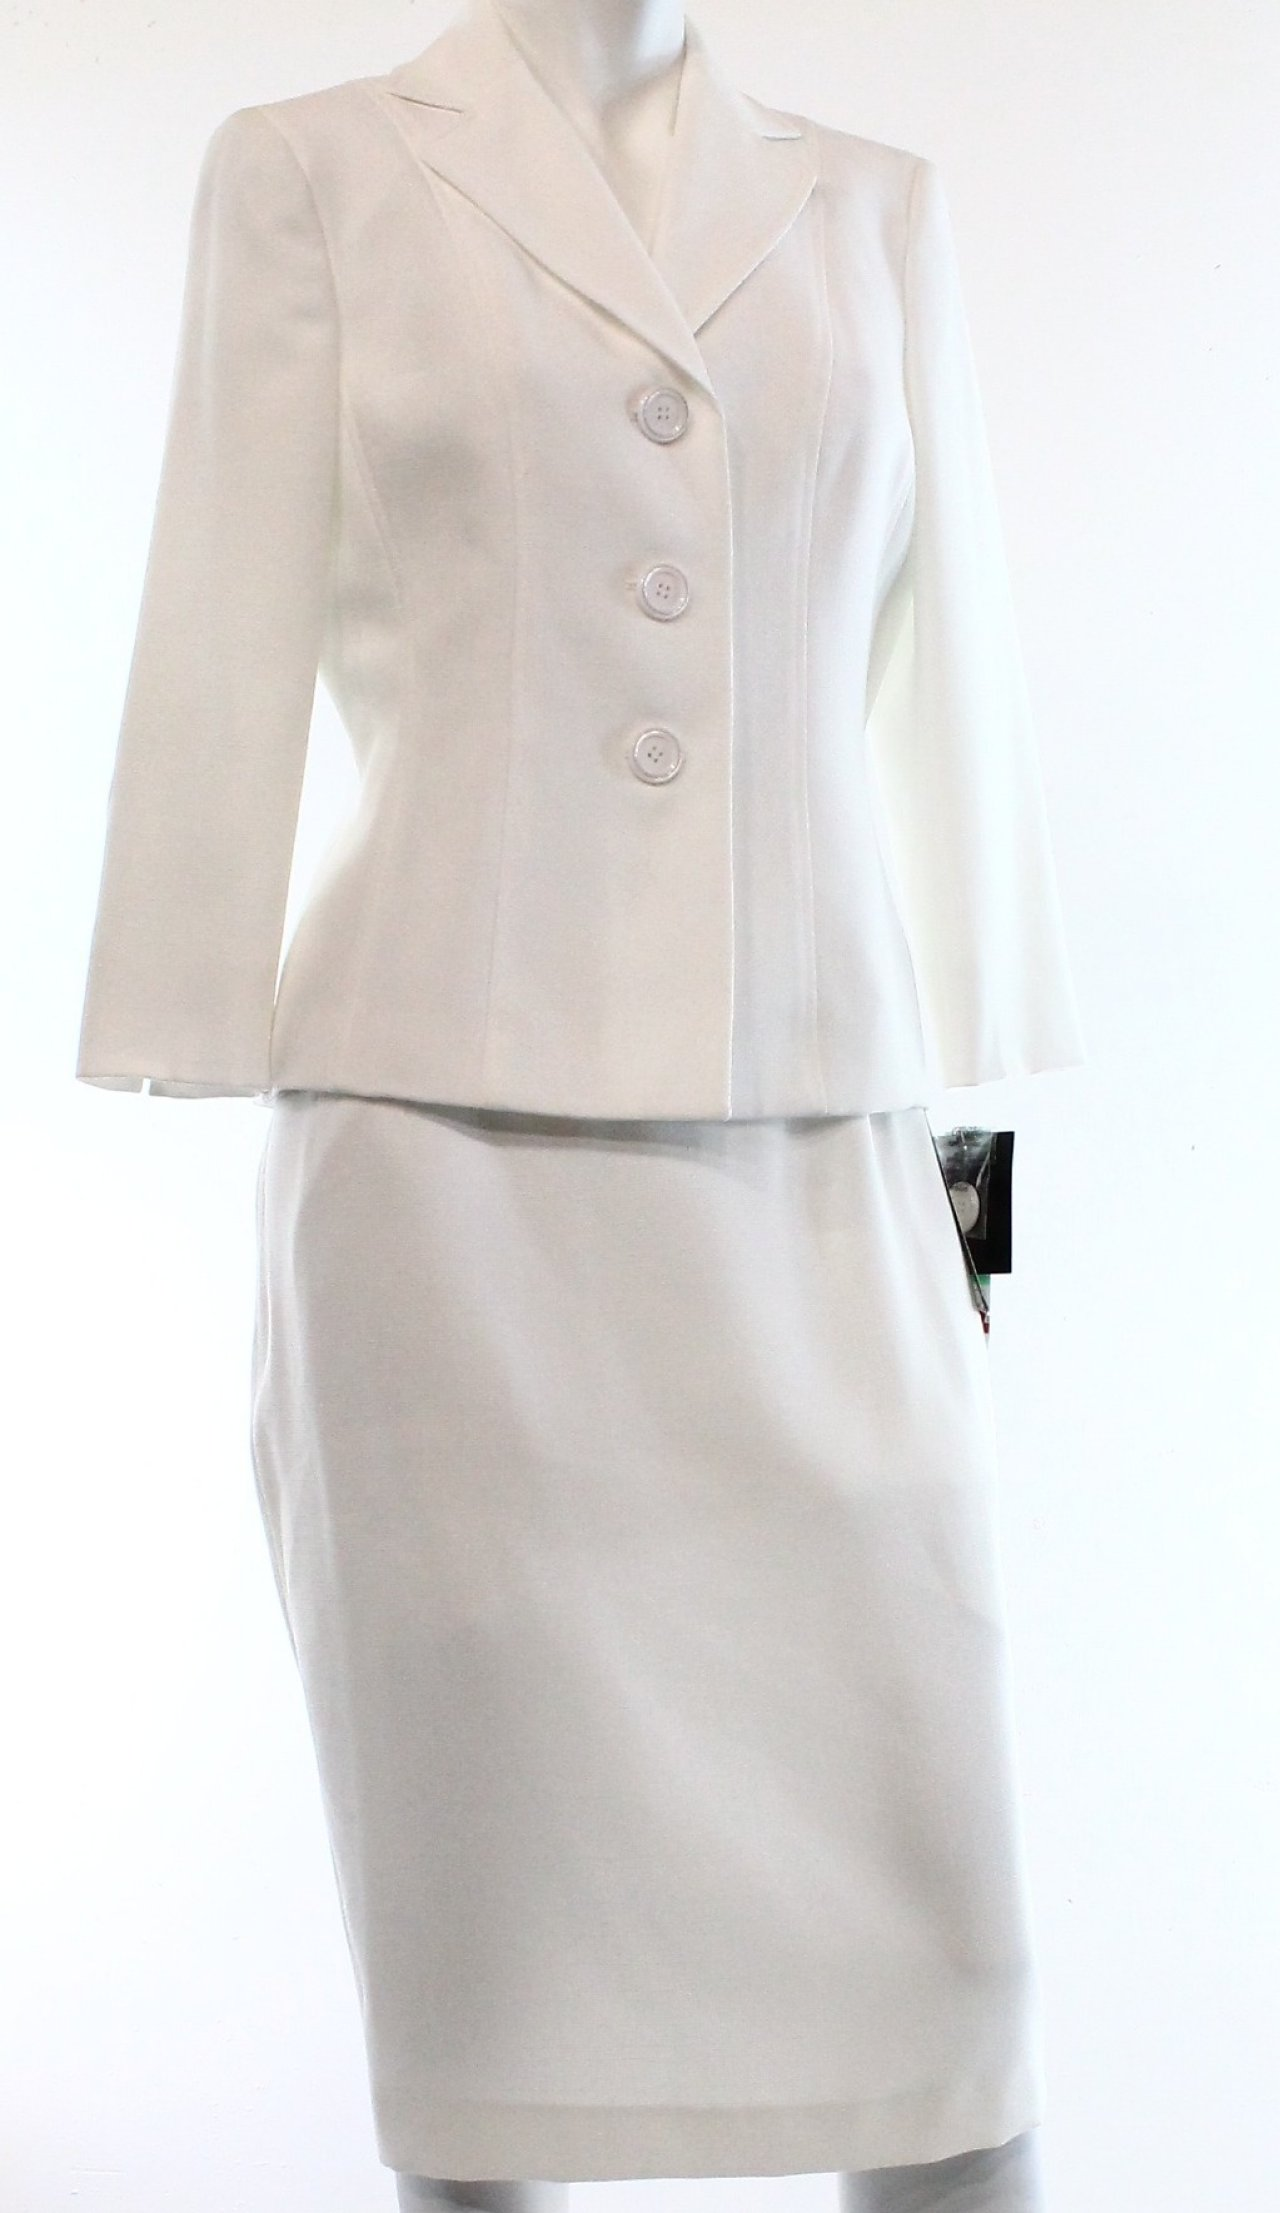 le suit new white s size 6 textured pencil skirt